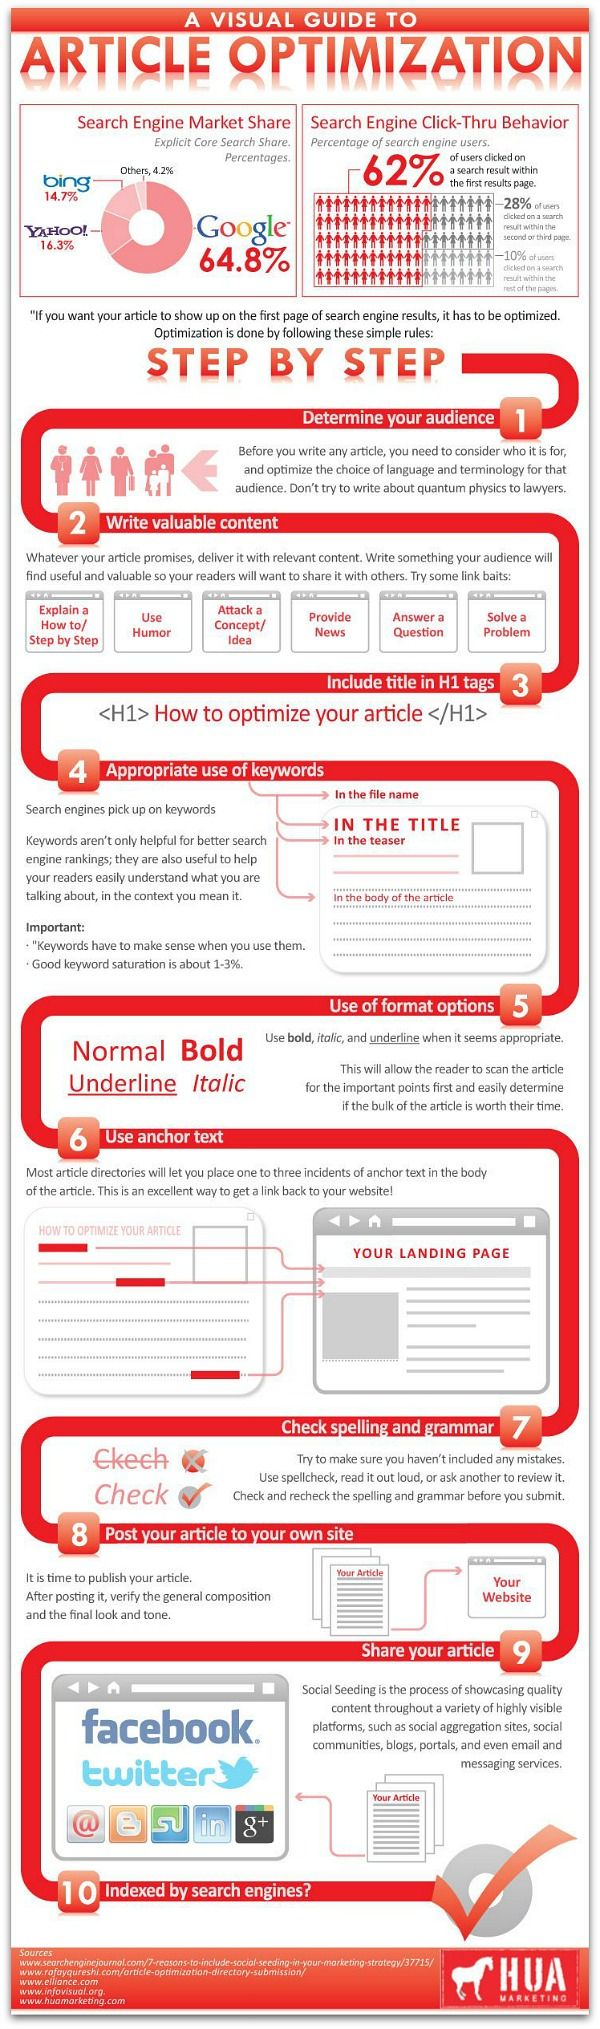 Infographic - A Visual Guide to Article Optimization (Step-by-step SEO guide for blog posts) - via Ragan.com and HUA Marketing